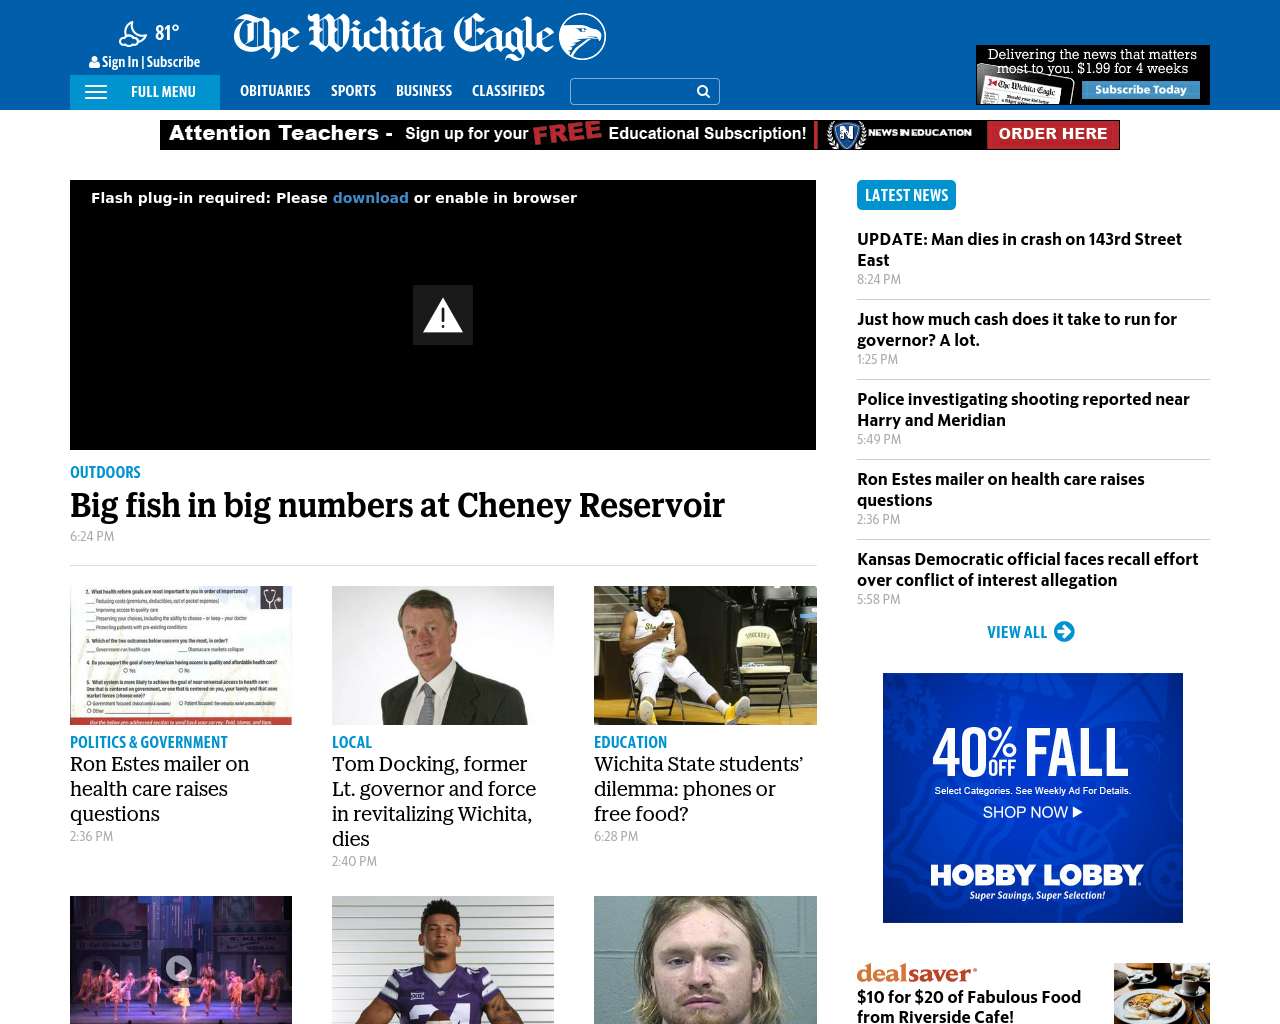 The-Wichita-Eagle-Advertising-Reviews-Pricing